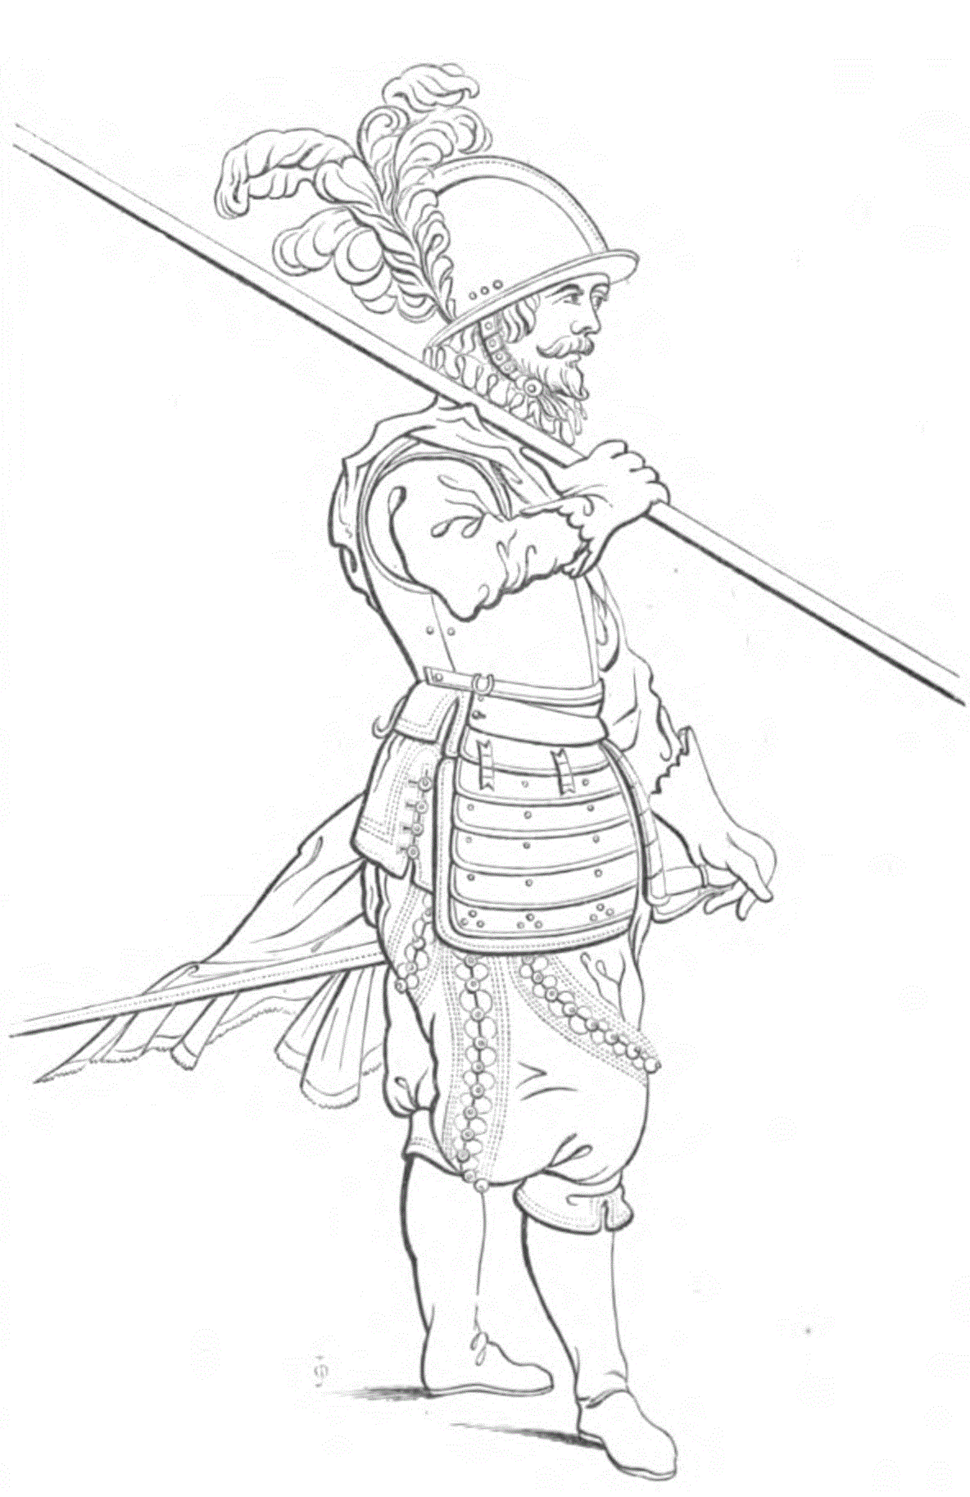 17th century European pikeman